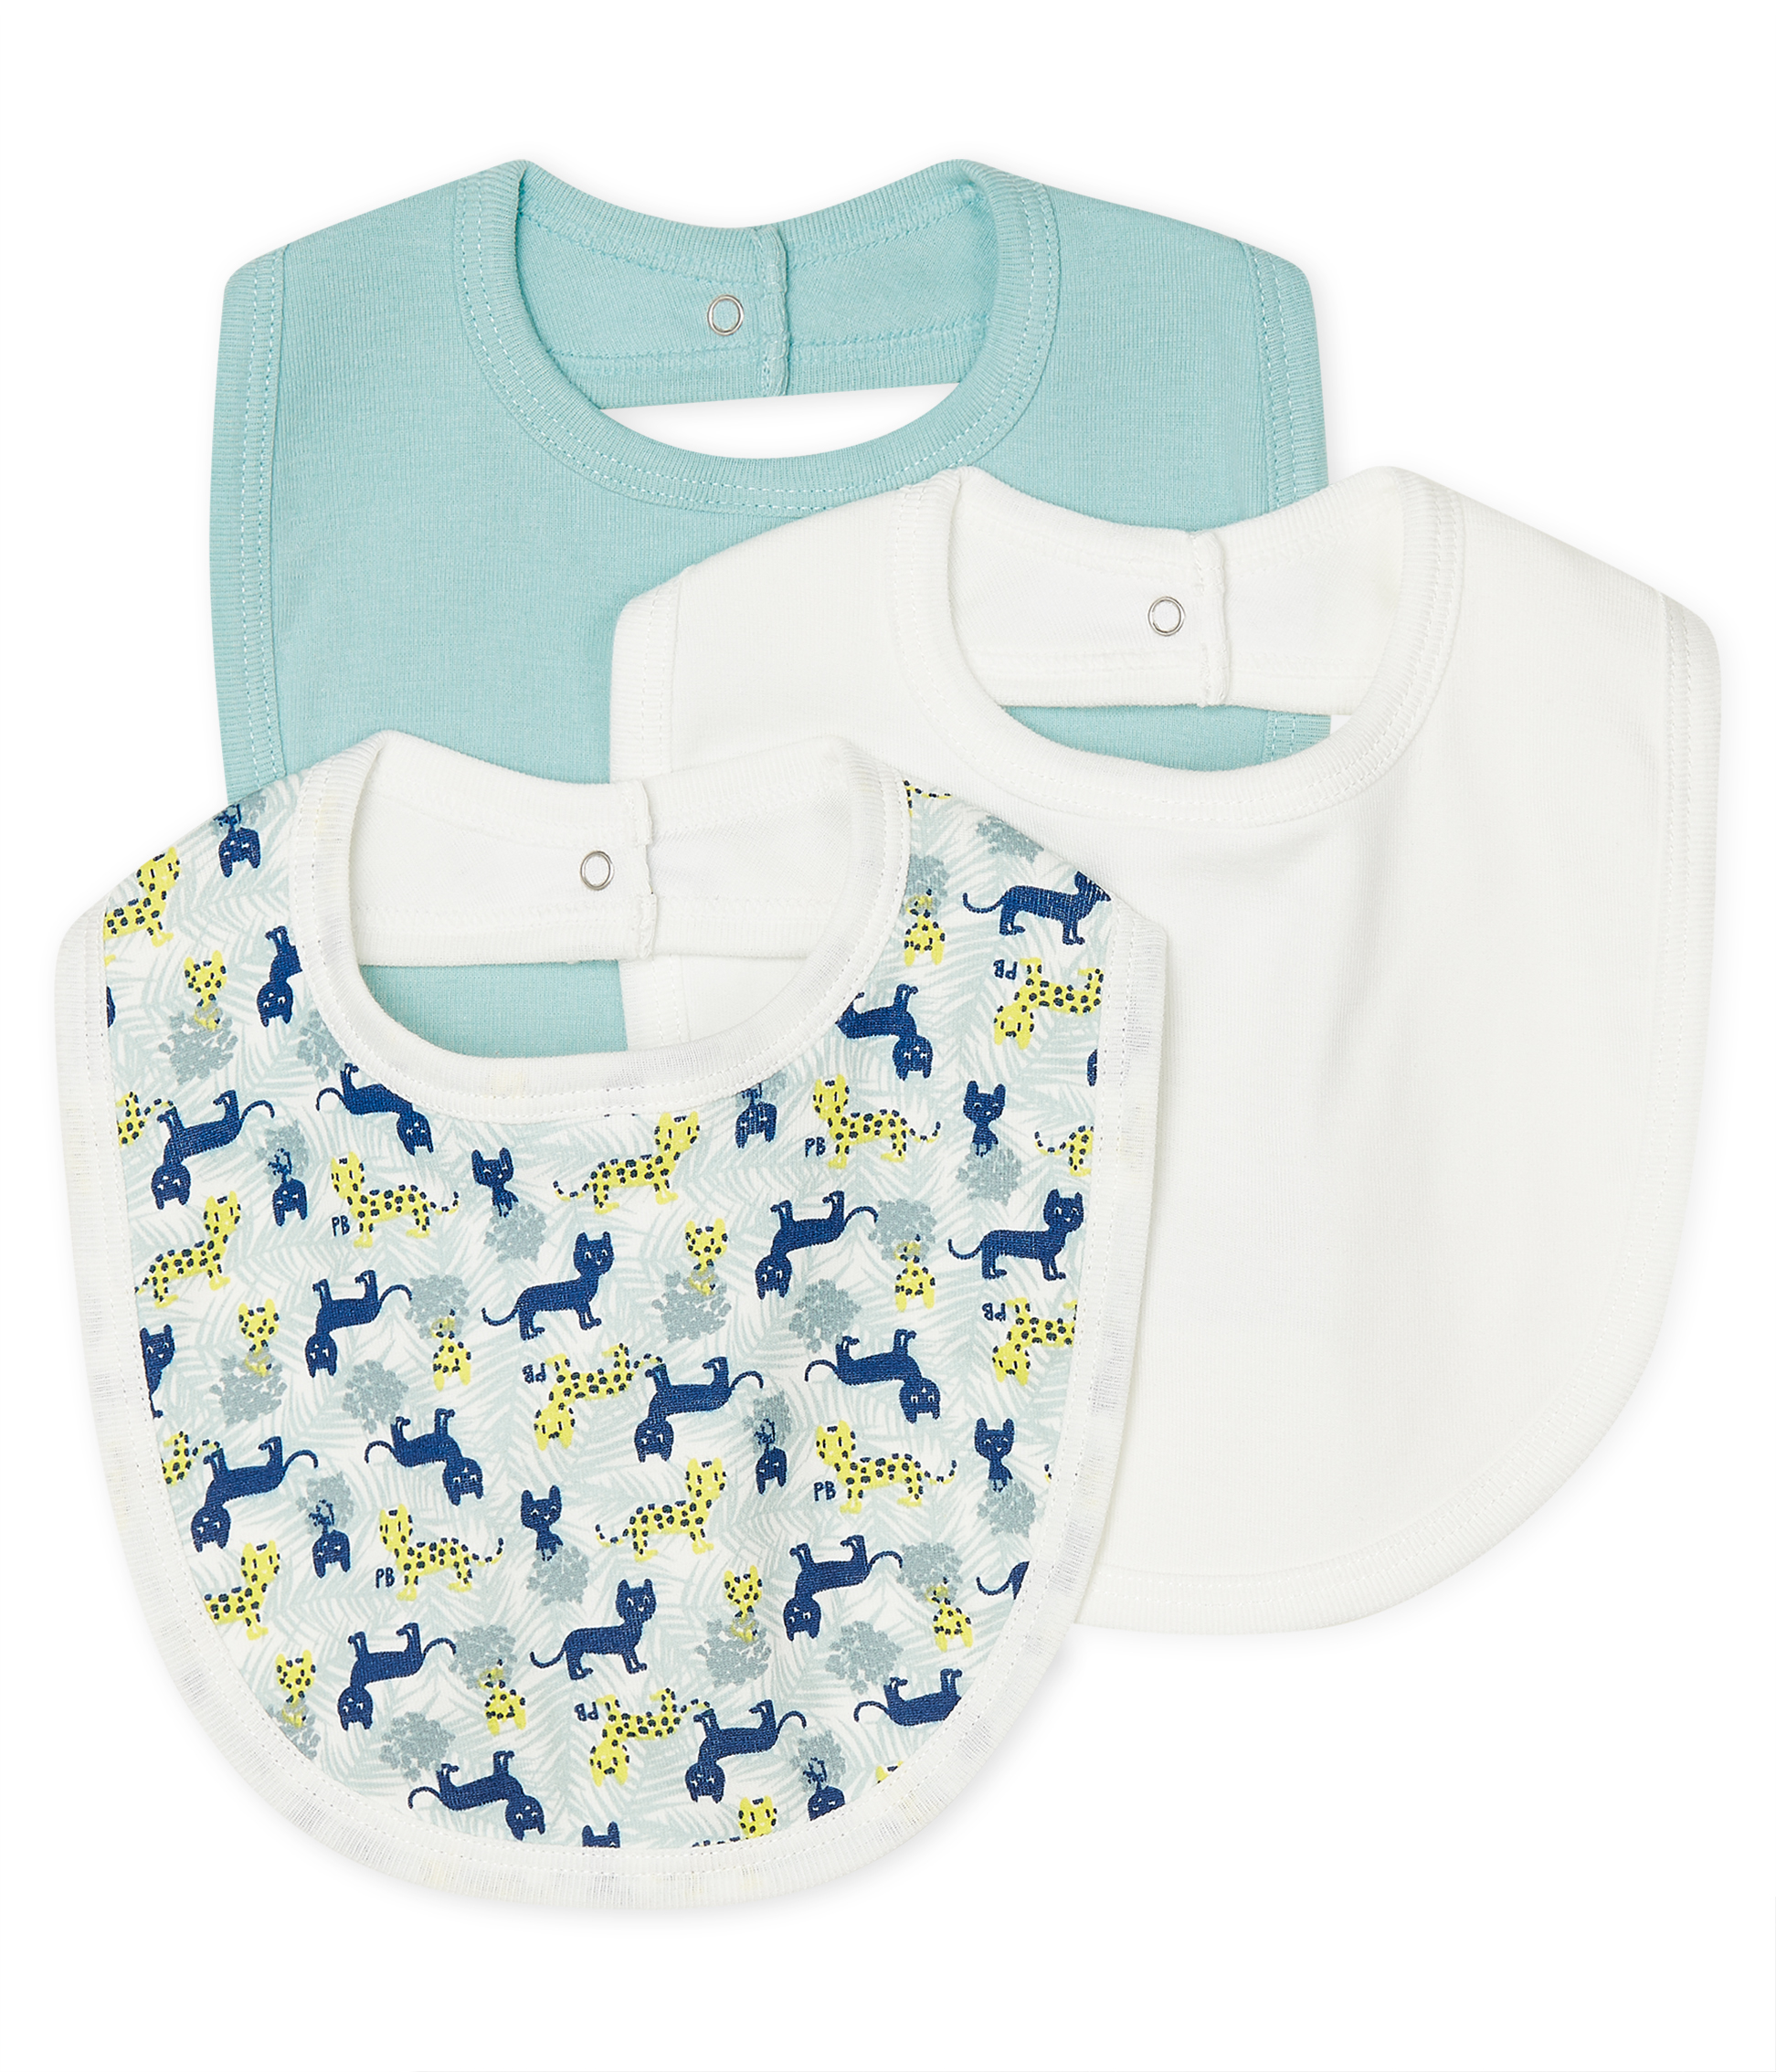 Baby Boys' Bibs - 3-Piece Set